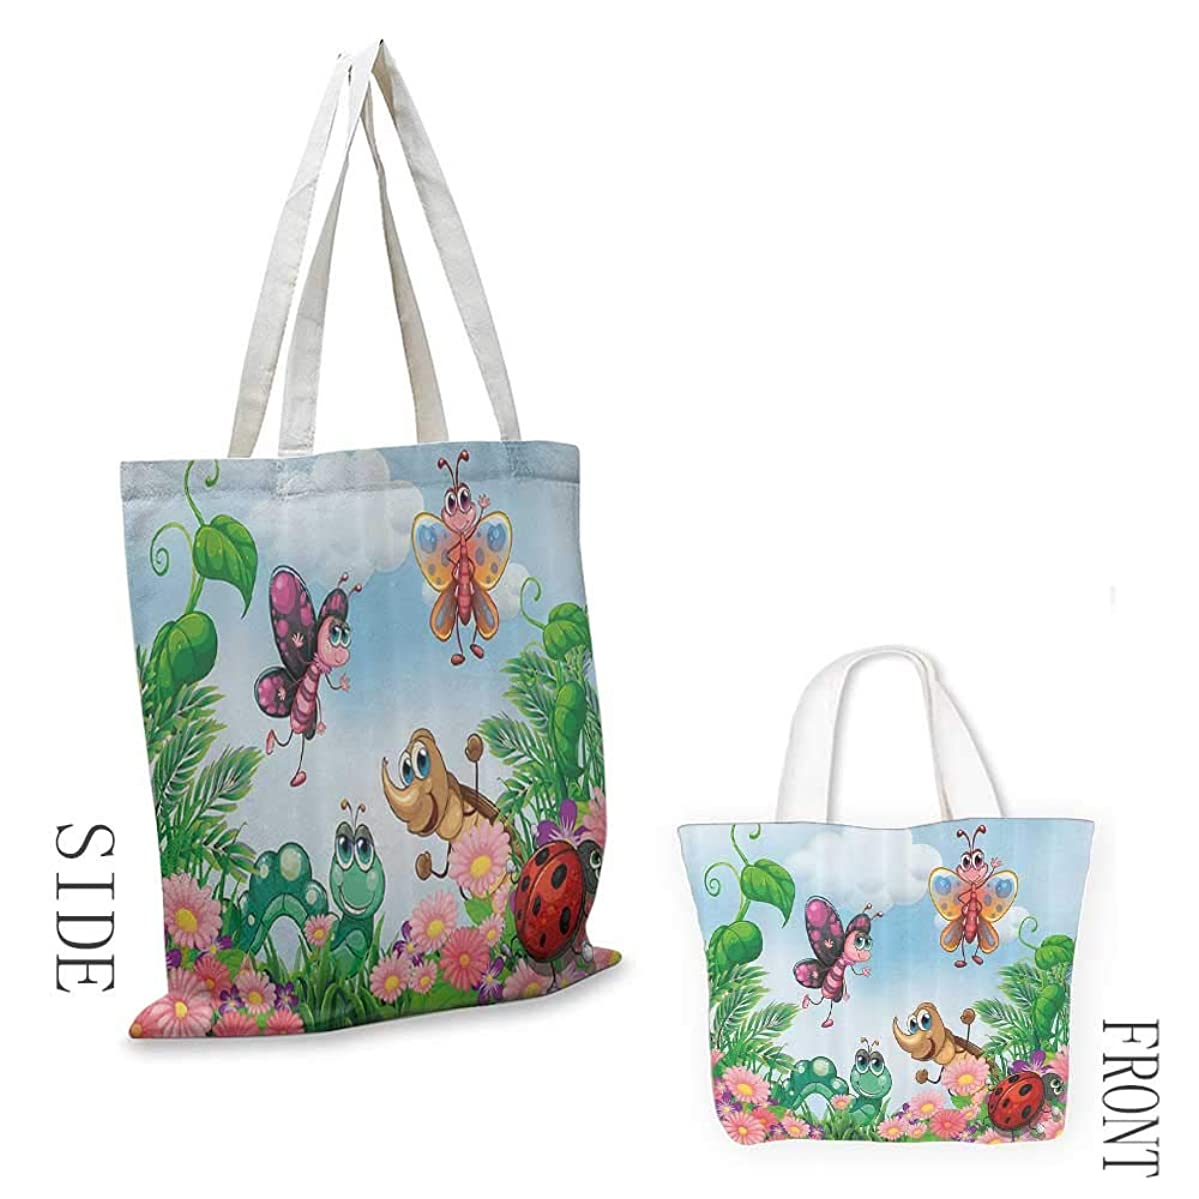 Tote bag Garden Gardening Theme Illustration of Butterfly Ladybug Worm Flowers and Grass Coin cash wallet 16.5